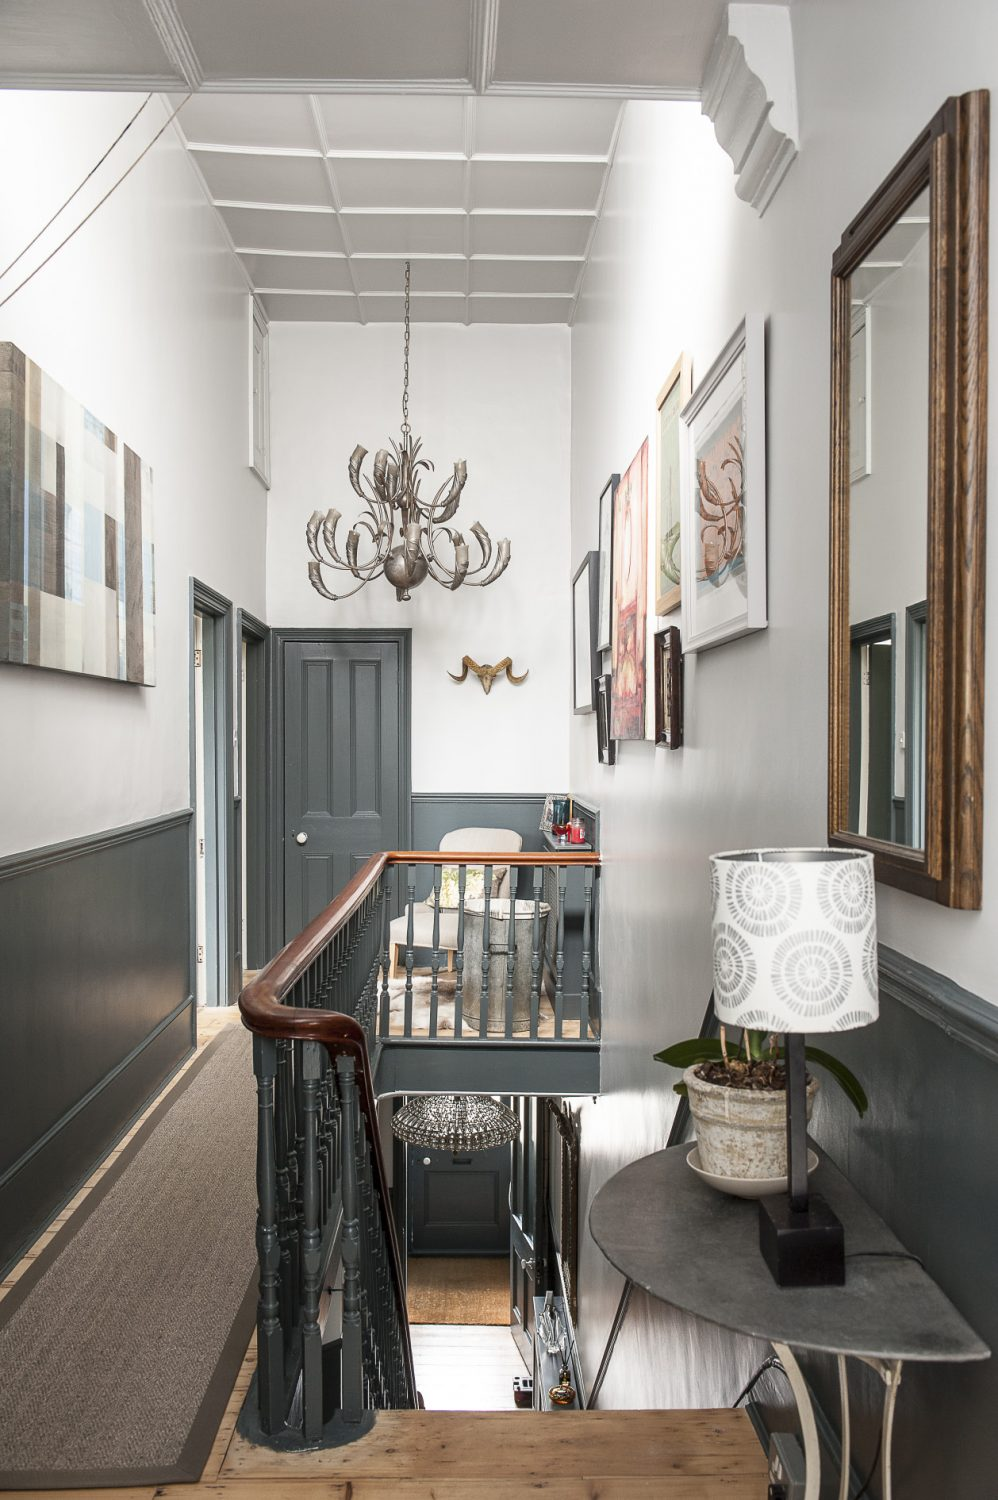 This was a large project, because the landing upstairs is huge. The walls above the stairs are very high, which also happily means that there's lots of space to hang pictures on the landing and plenty of room for some enormous, and enormously stylish, chandeliers